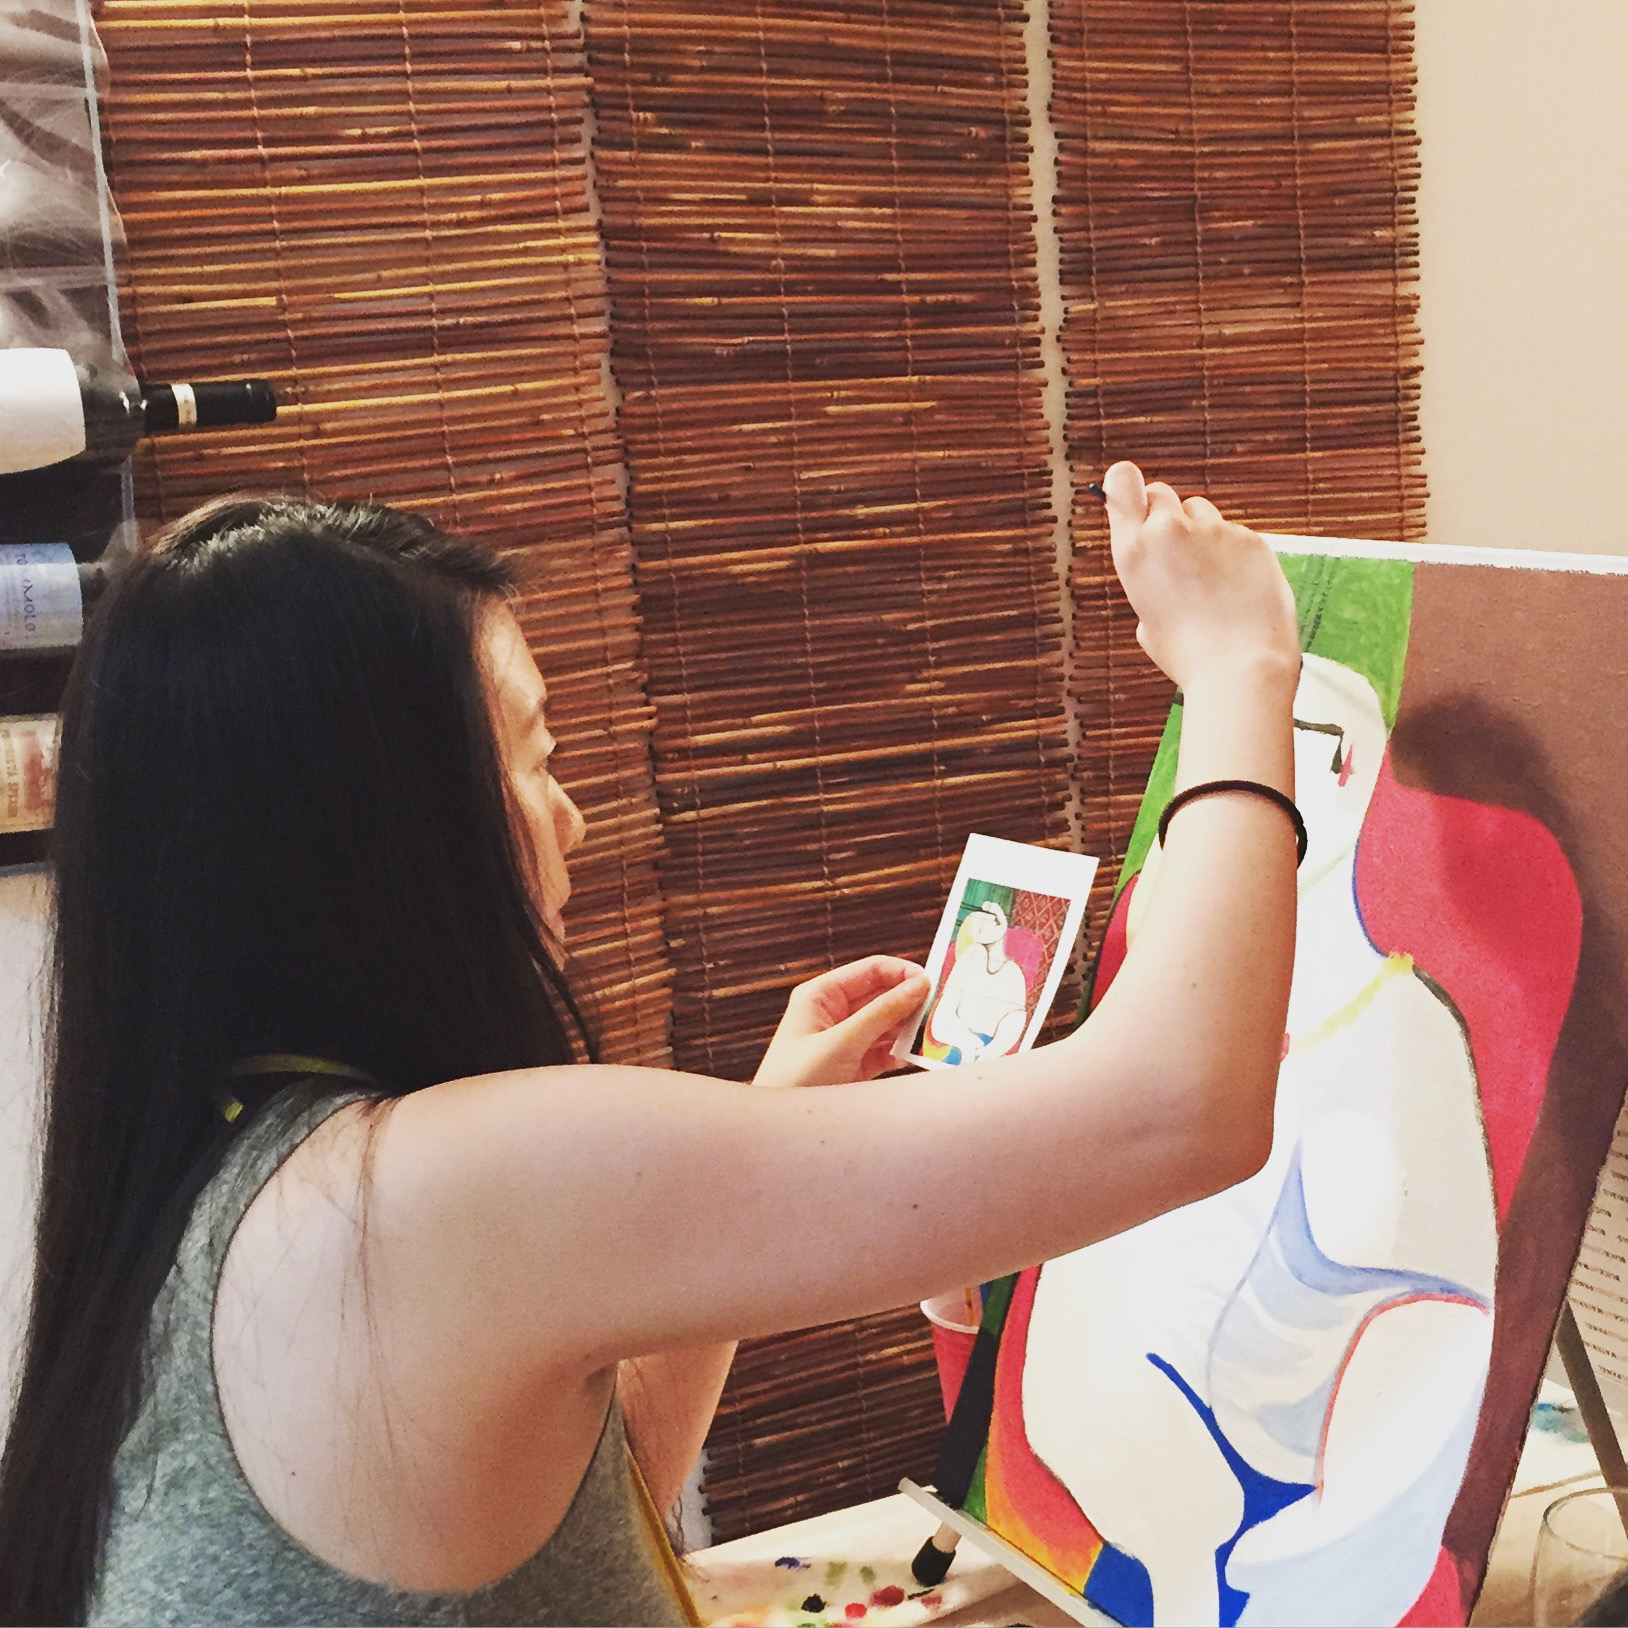 Interpreting Picasso's La Reve at an ART BOX Painting Session